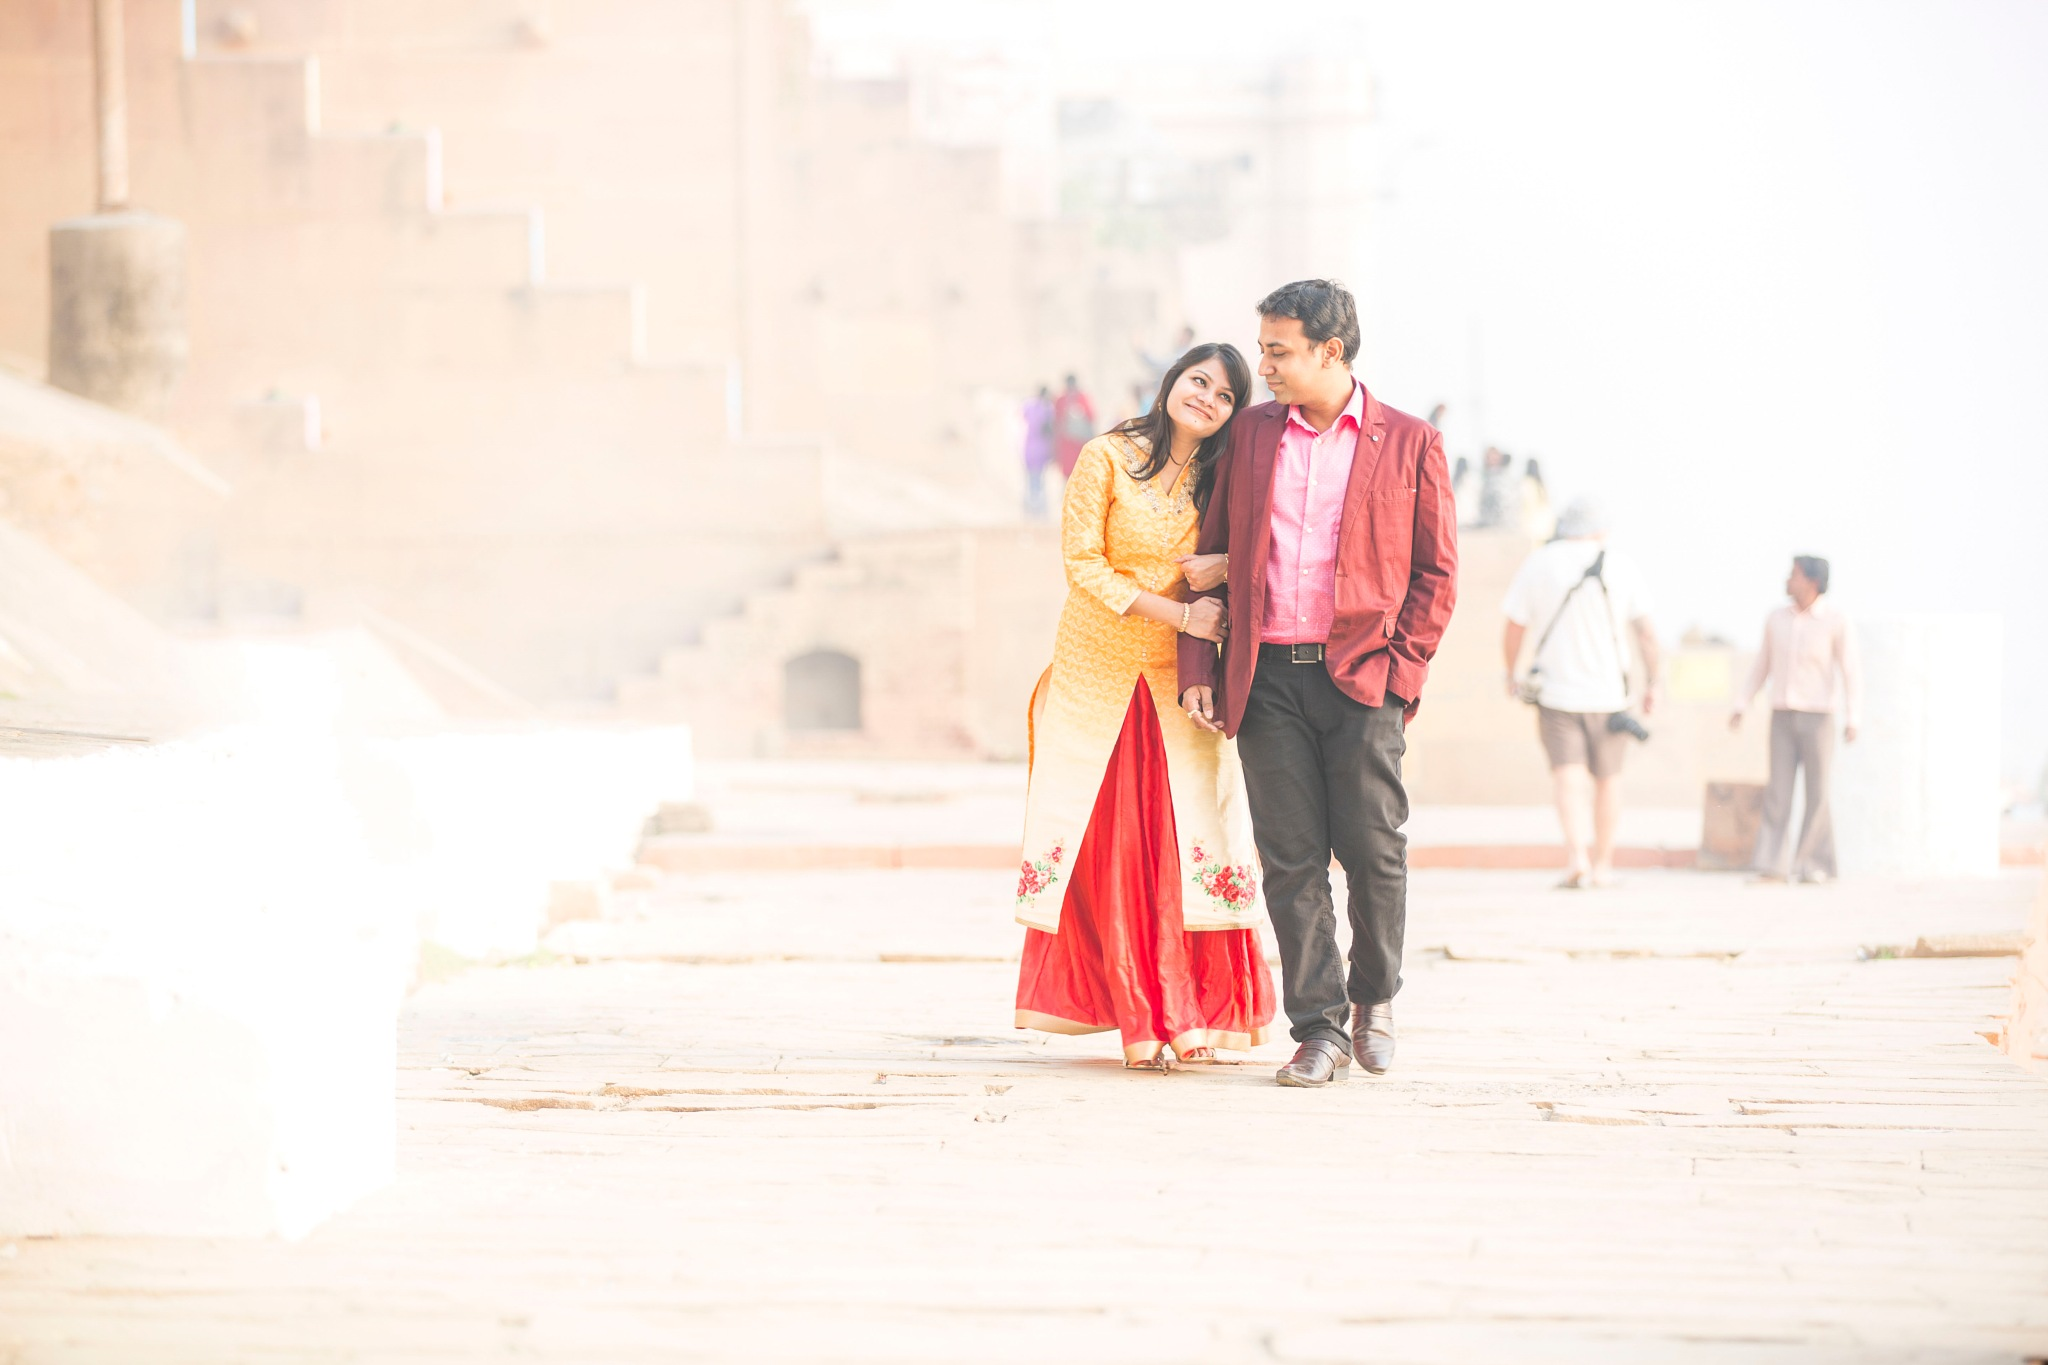 love at varanasi by arka.banerjee.samrat